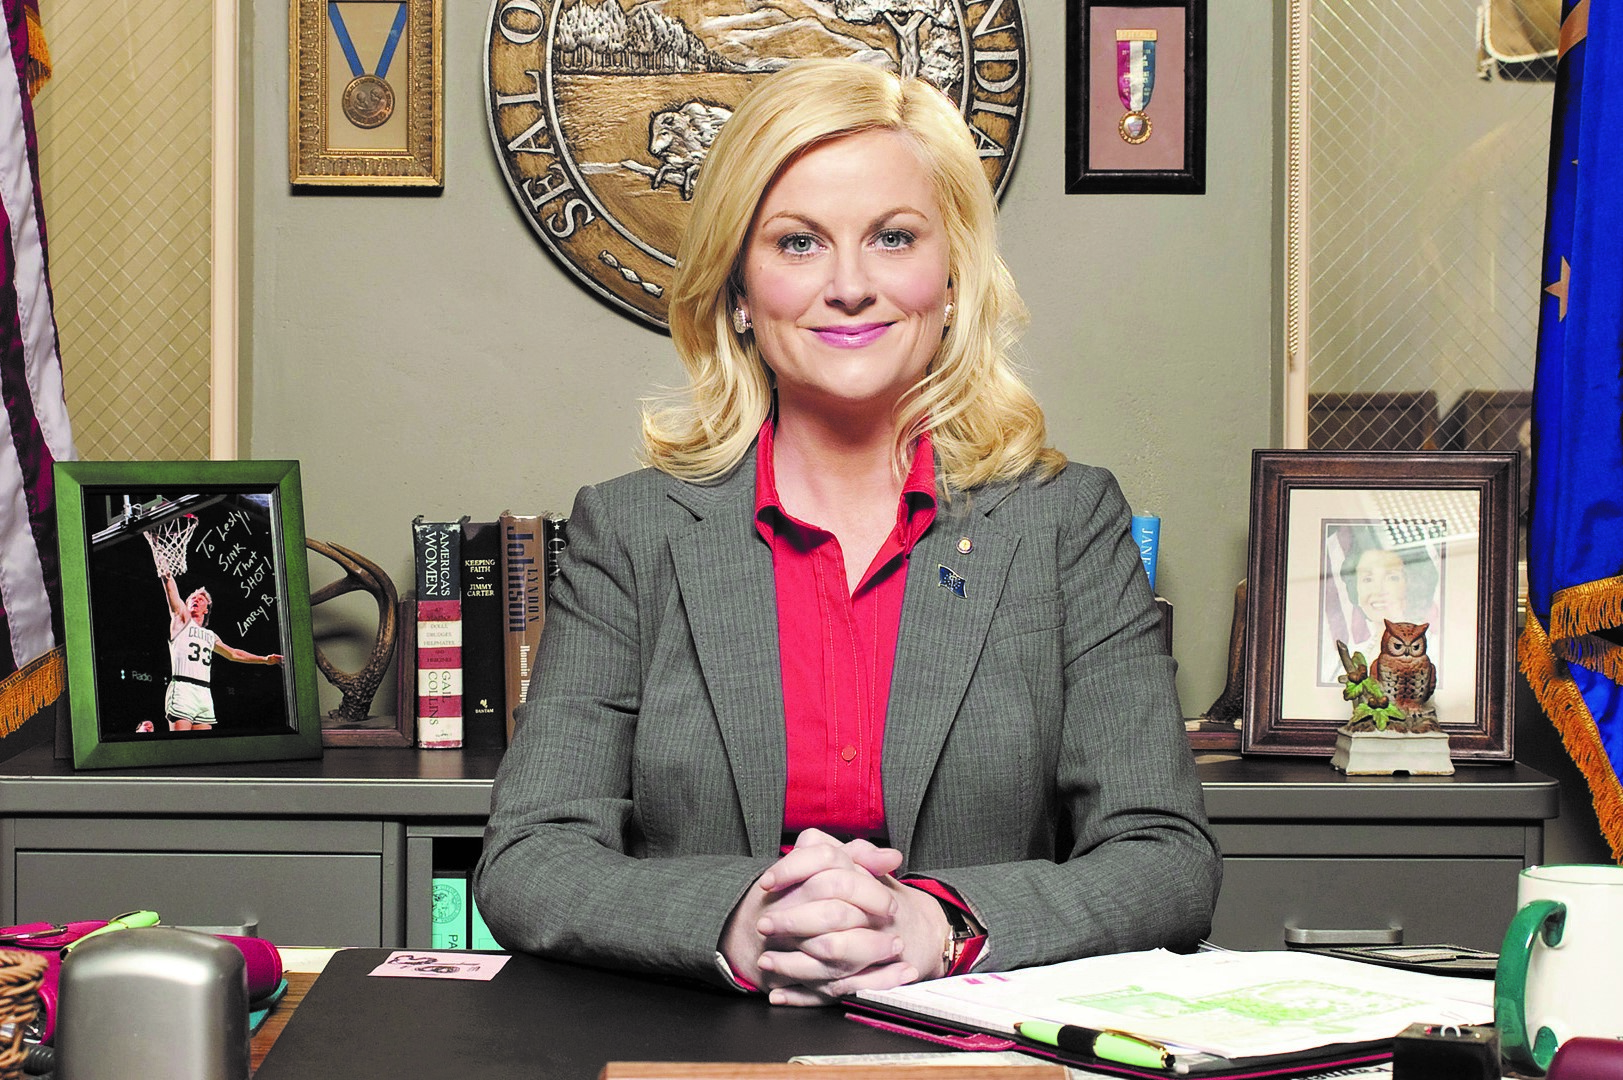 ¿Tiene un momento para hablar de series?: Parks and Recreation